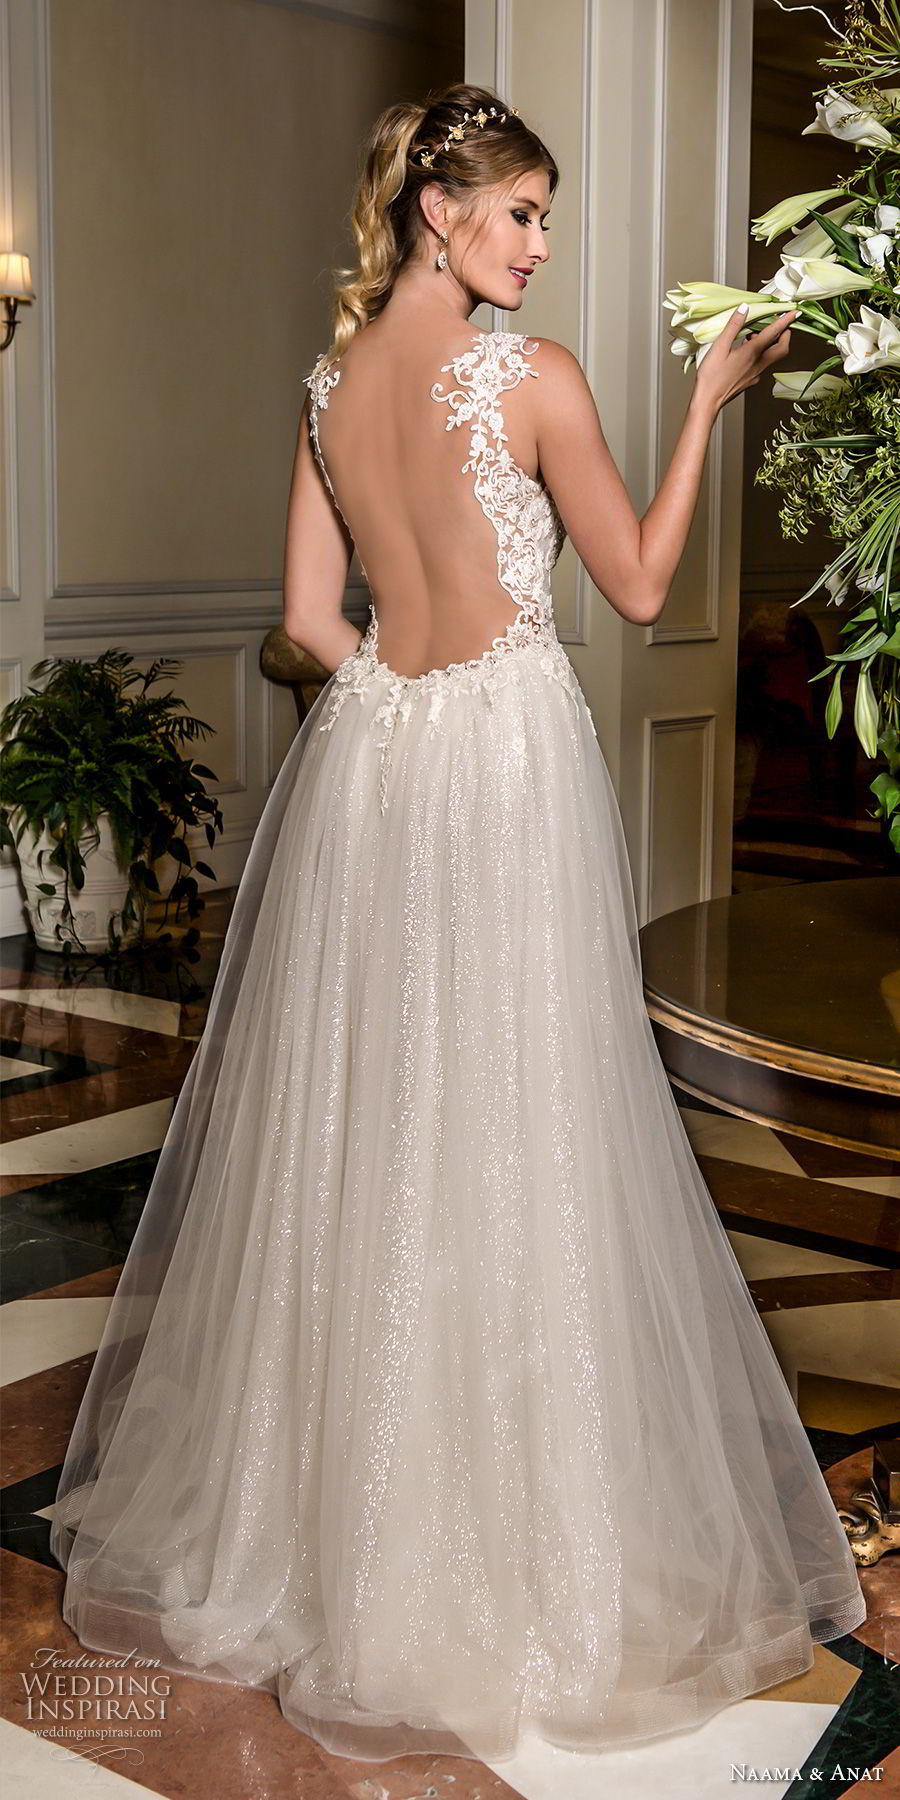 naama and anat fall 2018 bridal sleeveless with strap sweetheart neckline heavily embellished bodice romantic a  line wedding dress low open back sweep train (7) bv